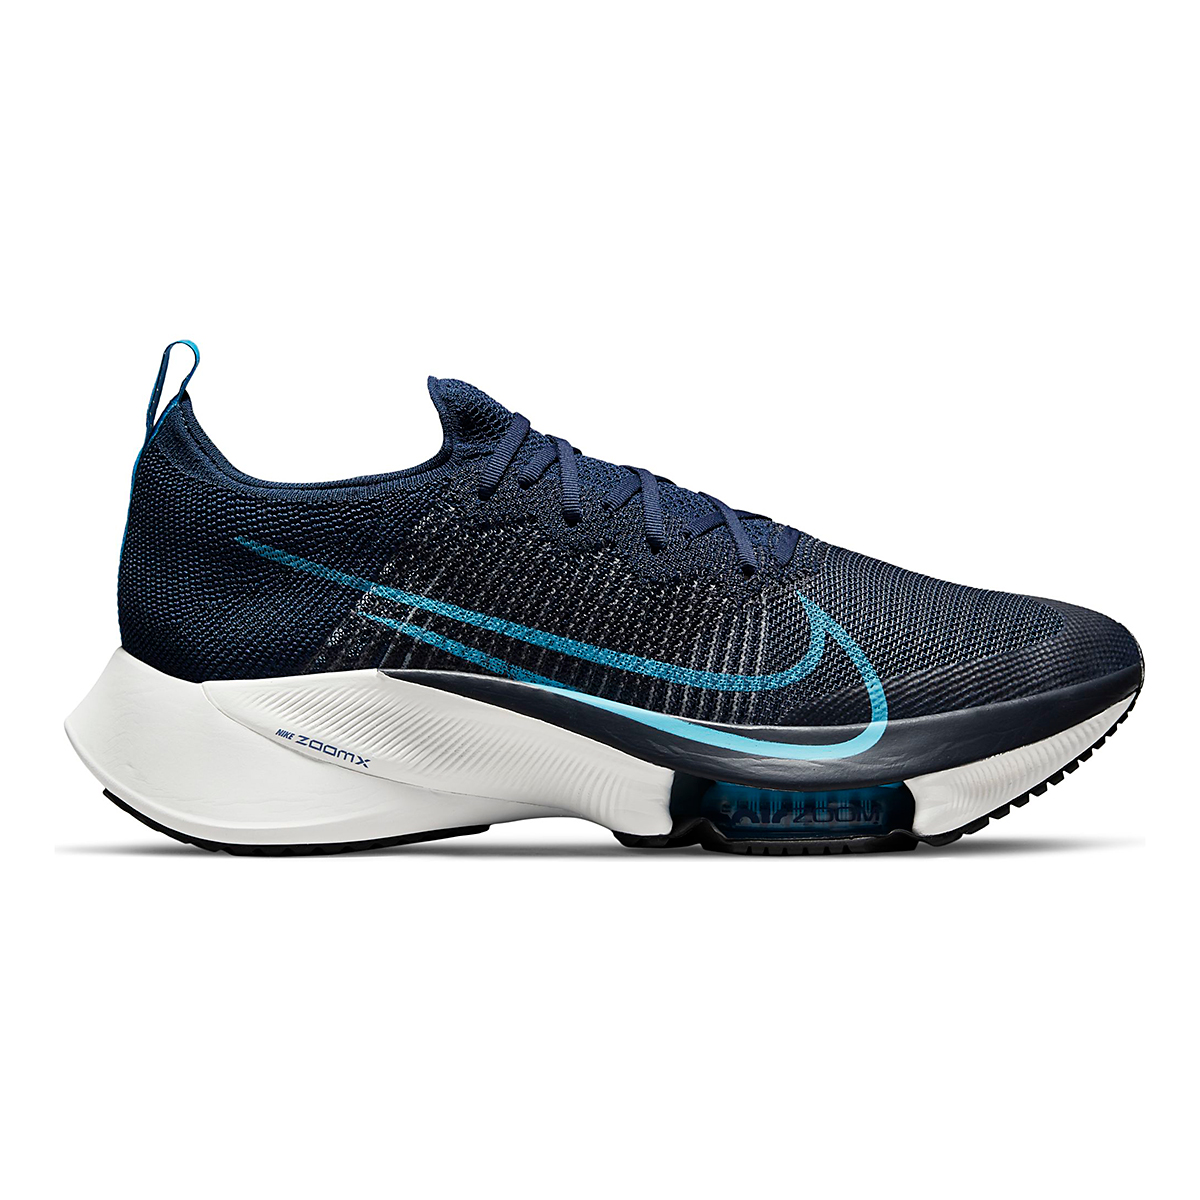 Men's Nike Air Zoom Tempo Next% Running Shoe - Color: College Navy/Chlorine Blue/Platinum Tint - Size: 7.5 - Width: Regular, College Navy/Chlorine Blue/Platinum Tint, large, image 1